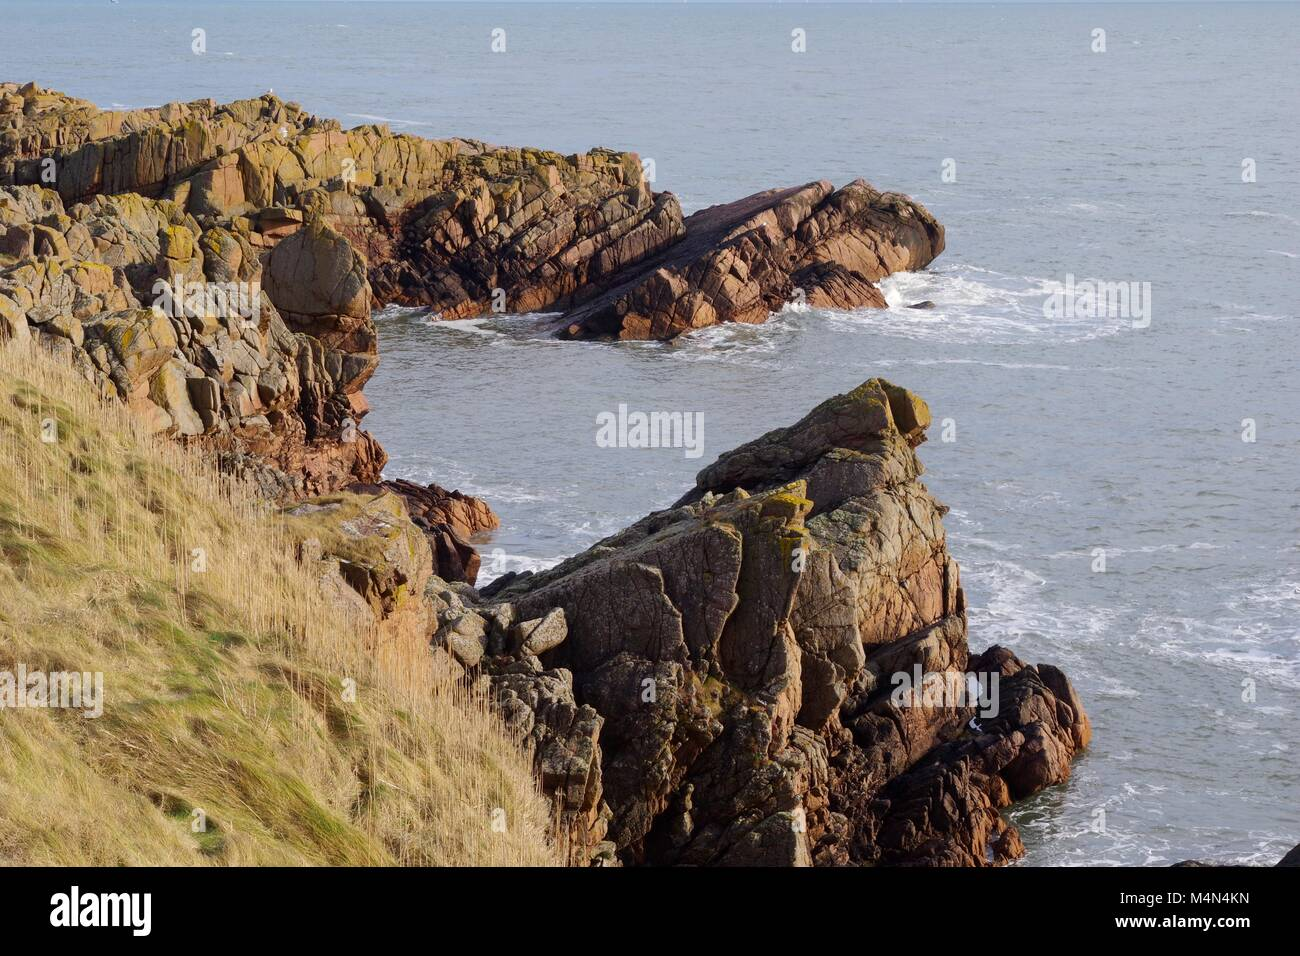 Rugged Granite Cliffs of Cruden Bay Jutting Out into the Wild North Sea. Aberdeenshire, Scotland, UK. Stock Photo